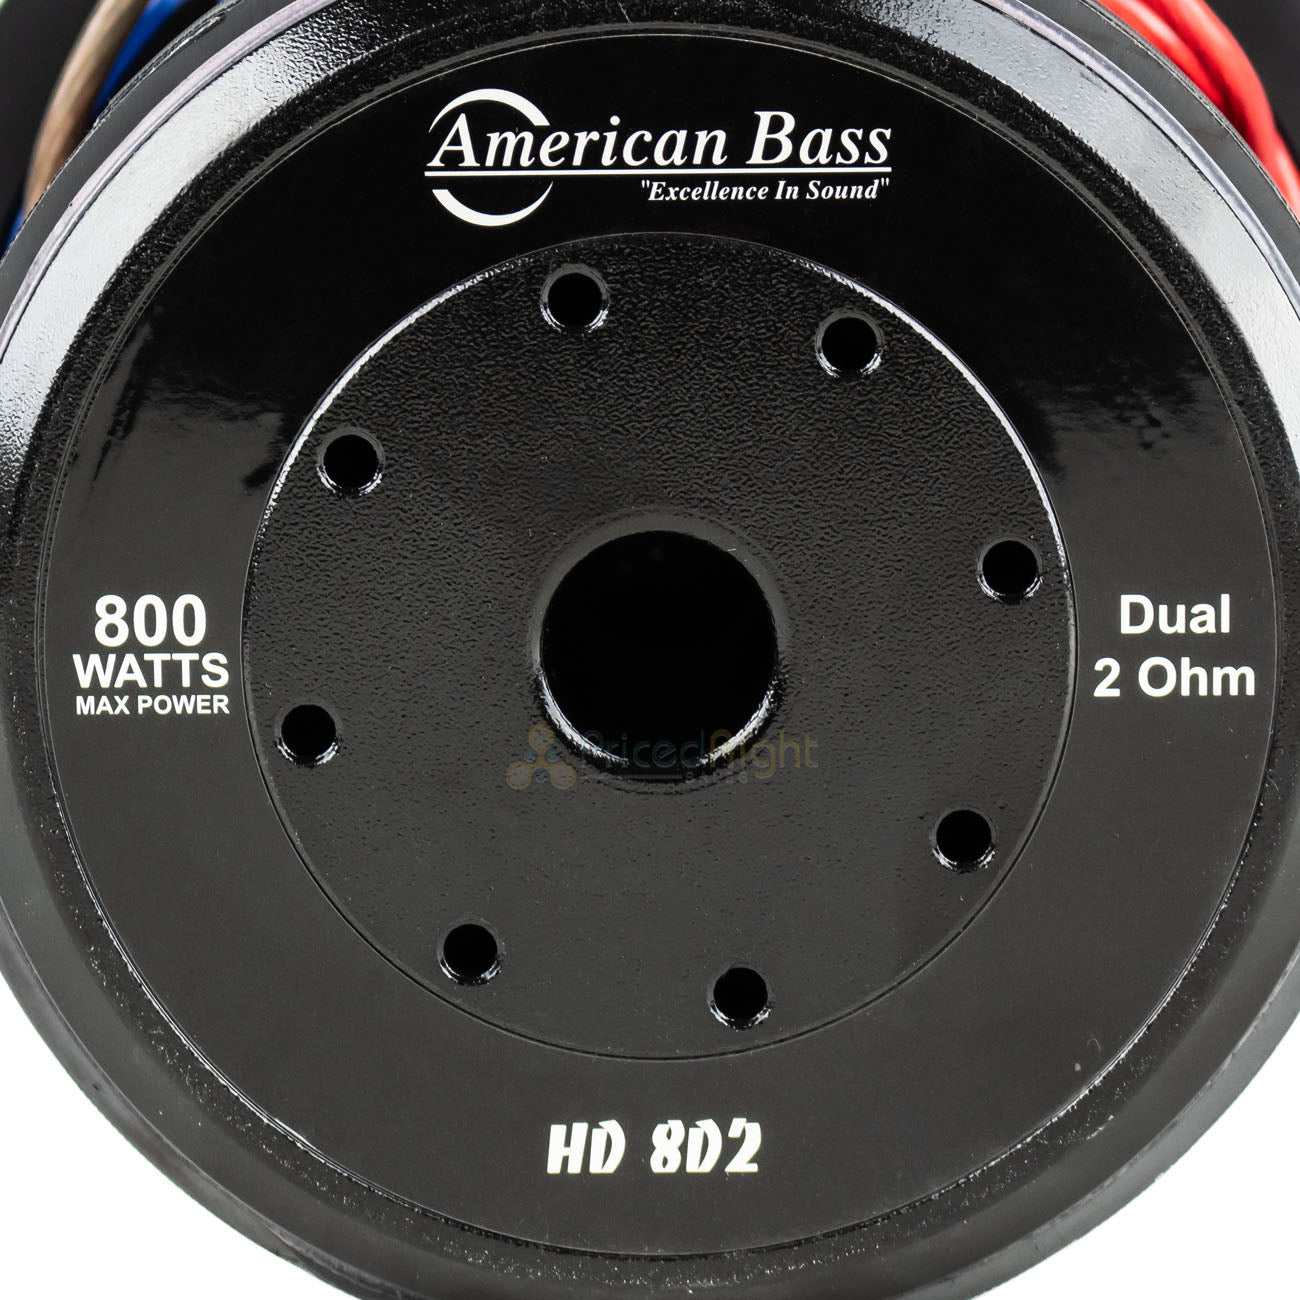 "American Bass HD-8D2 8"" Competition Subwoofers 800W Max Dual 2 Ohm Sub 2 Pack"